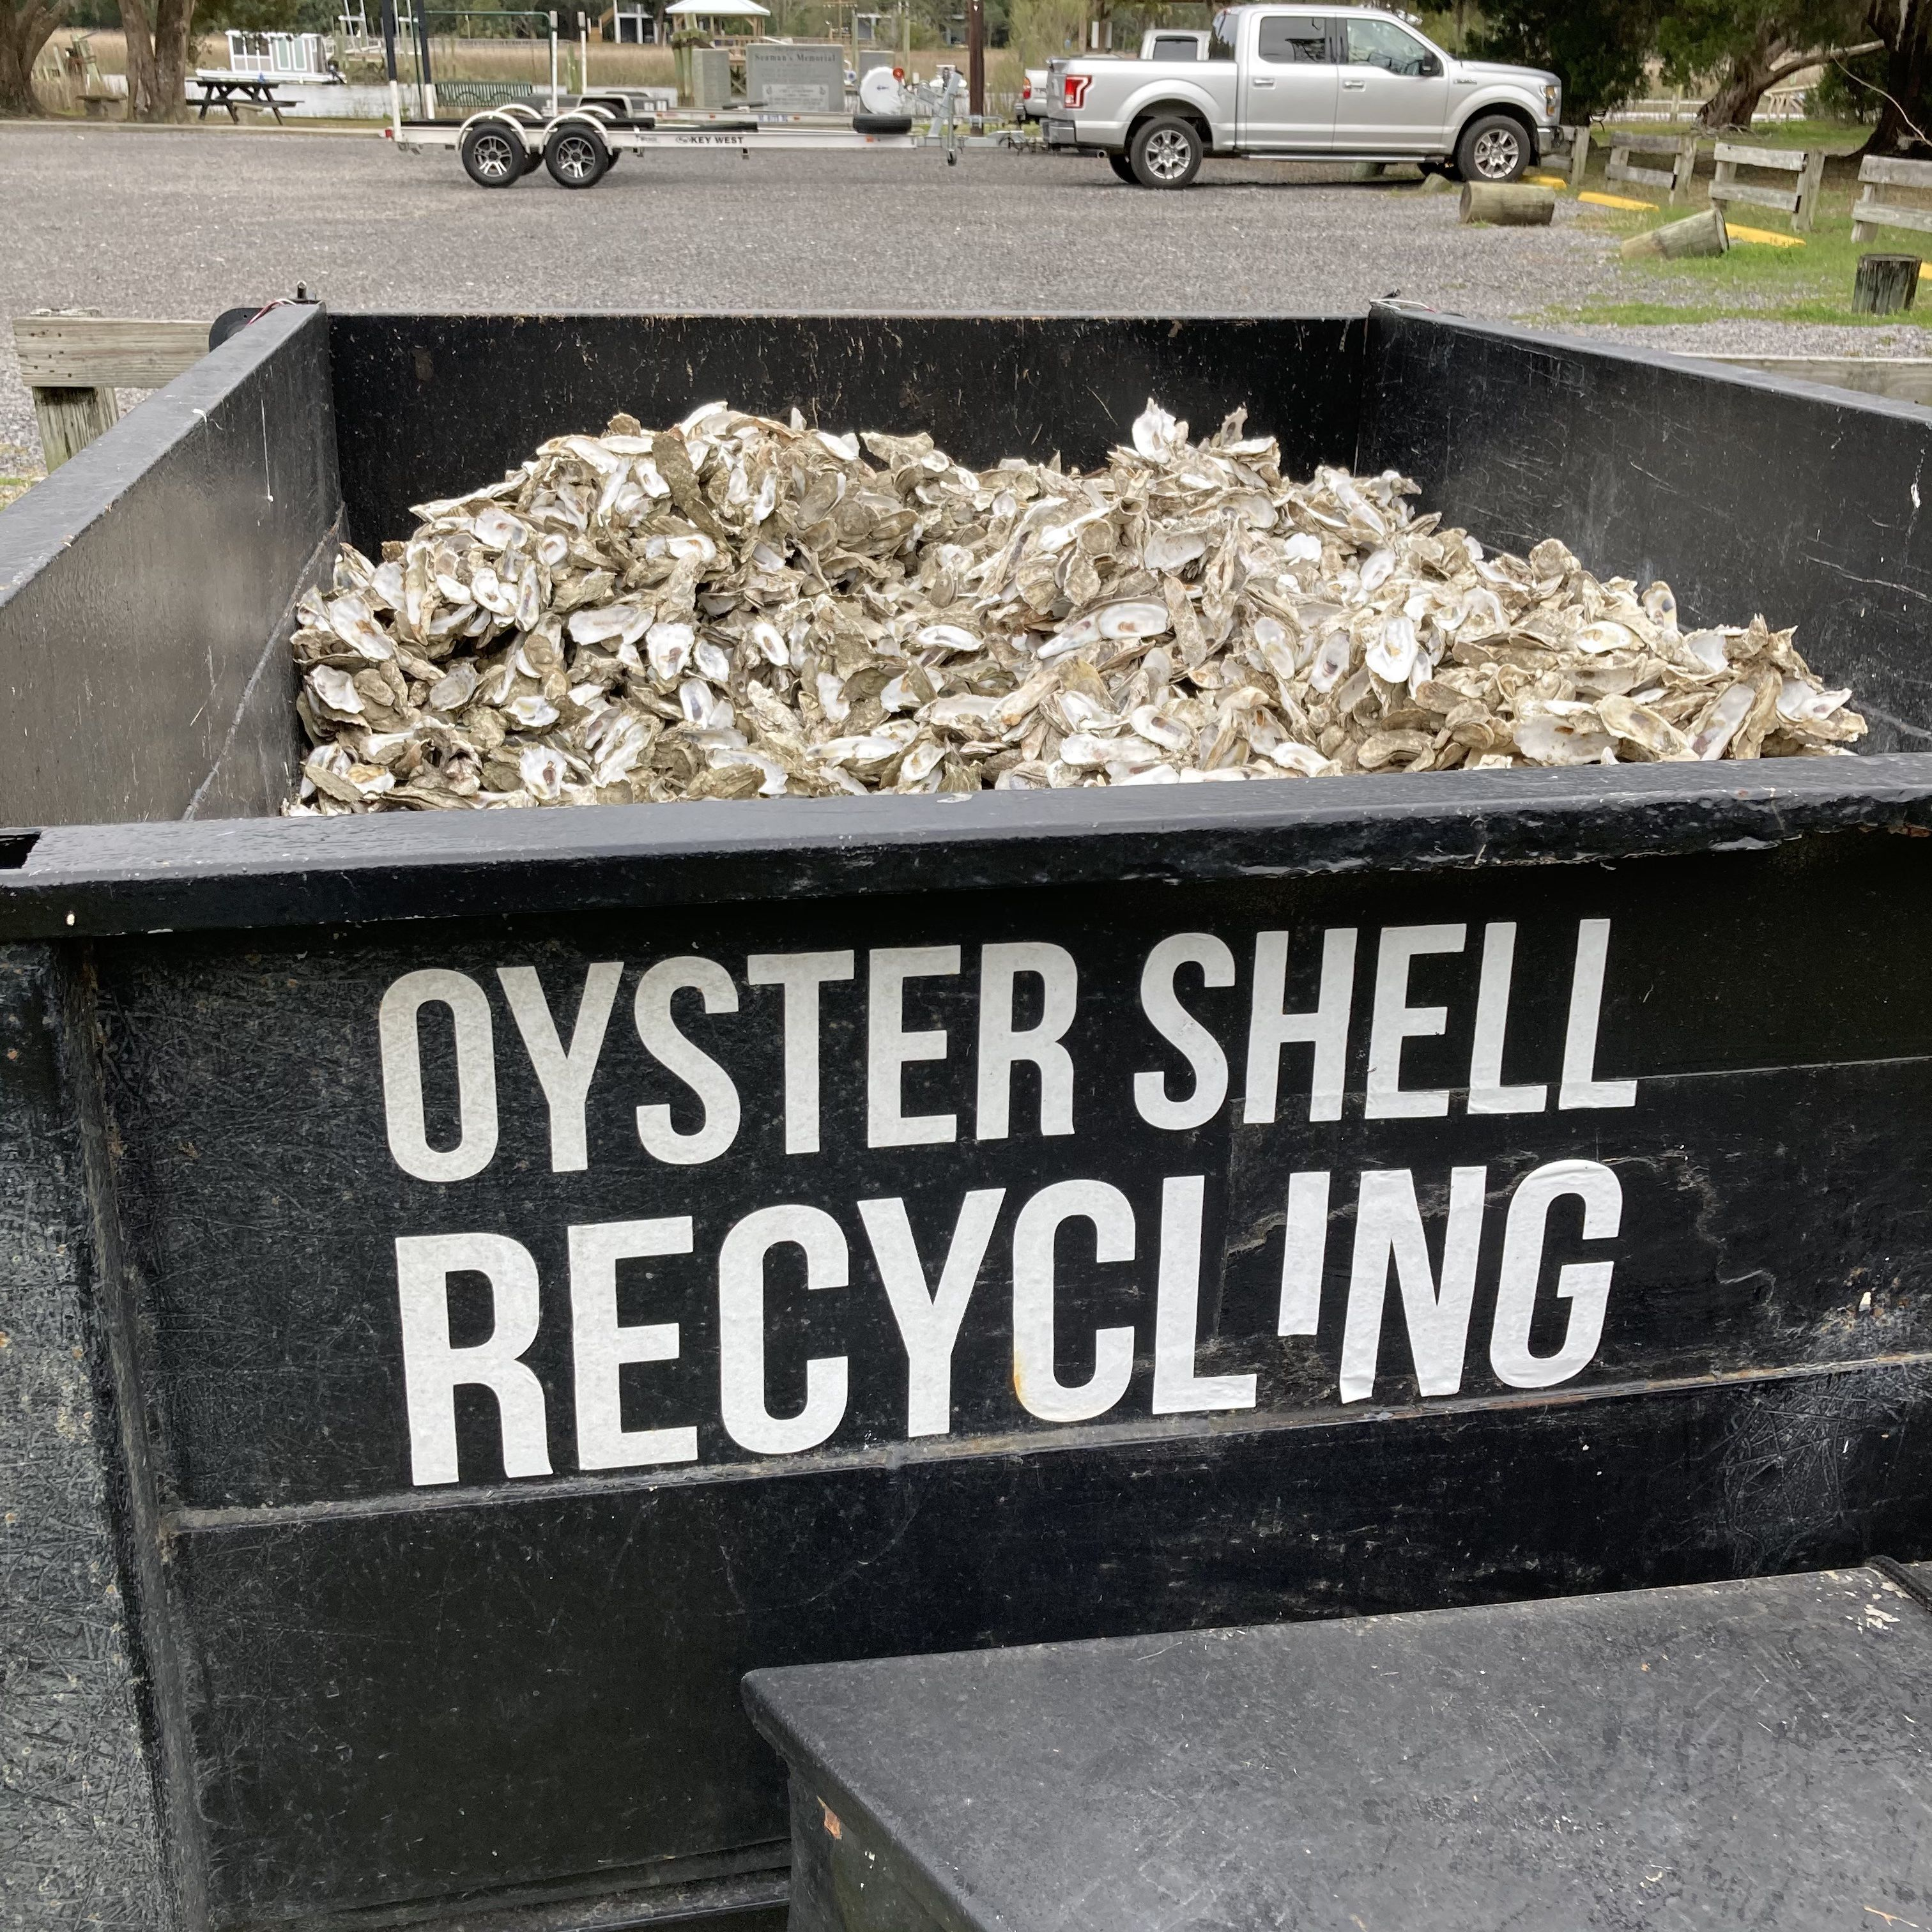 """A large bin filled with oyster shells that reads, """"Oyster Shell Recycling""""."""